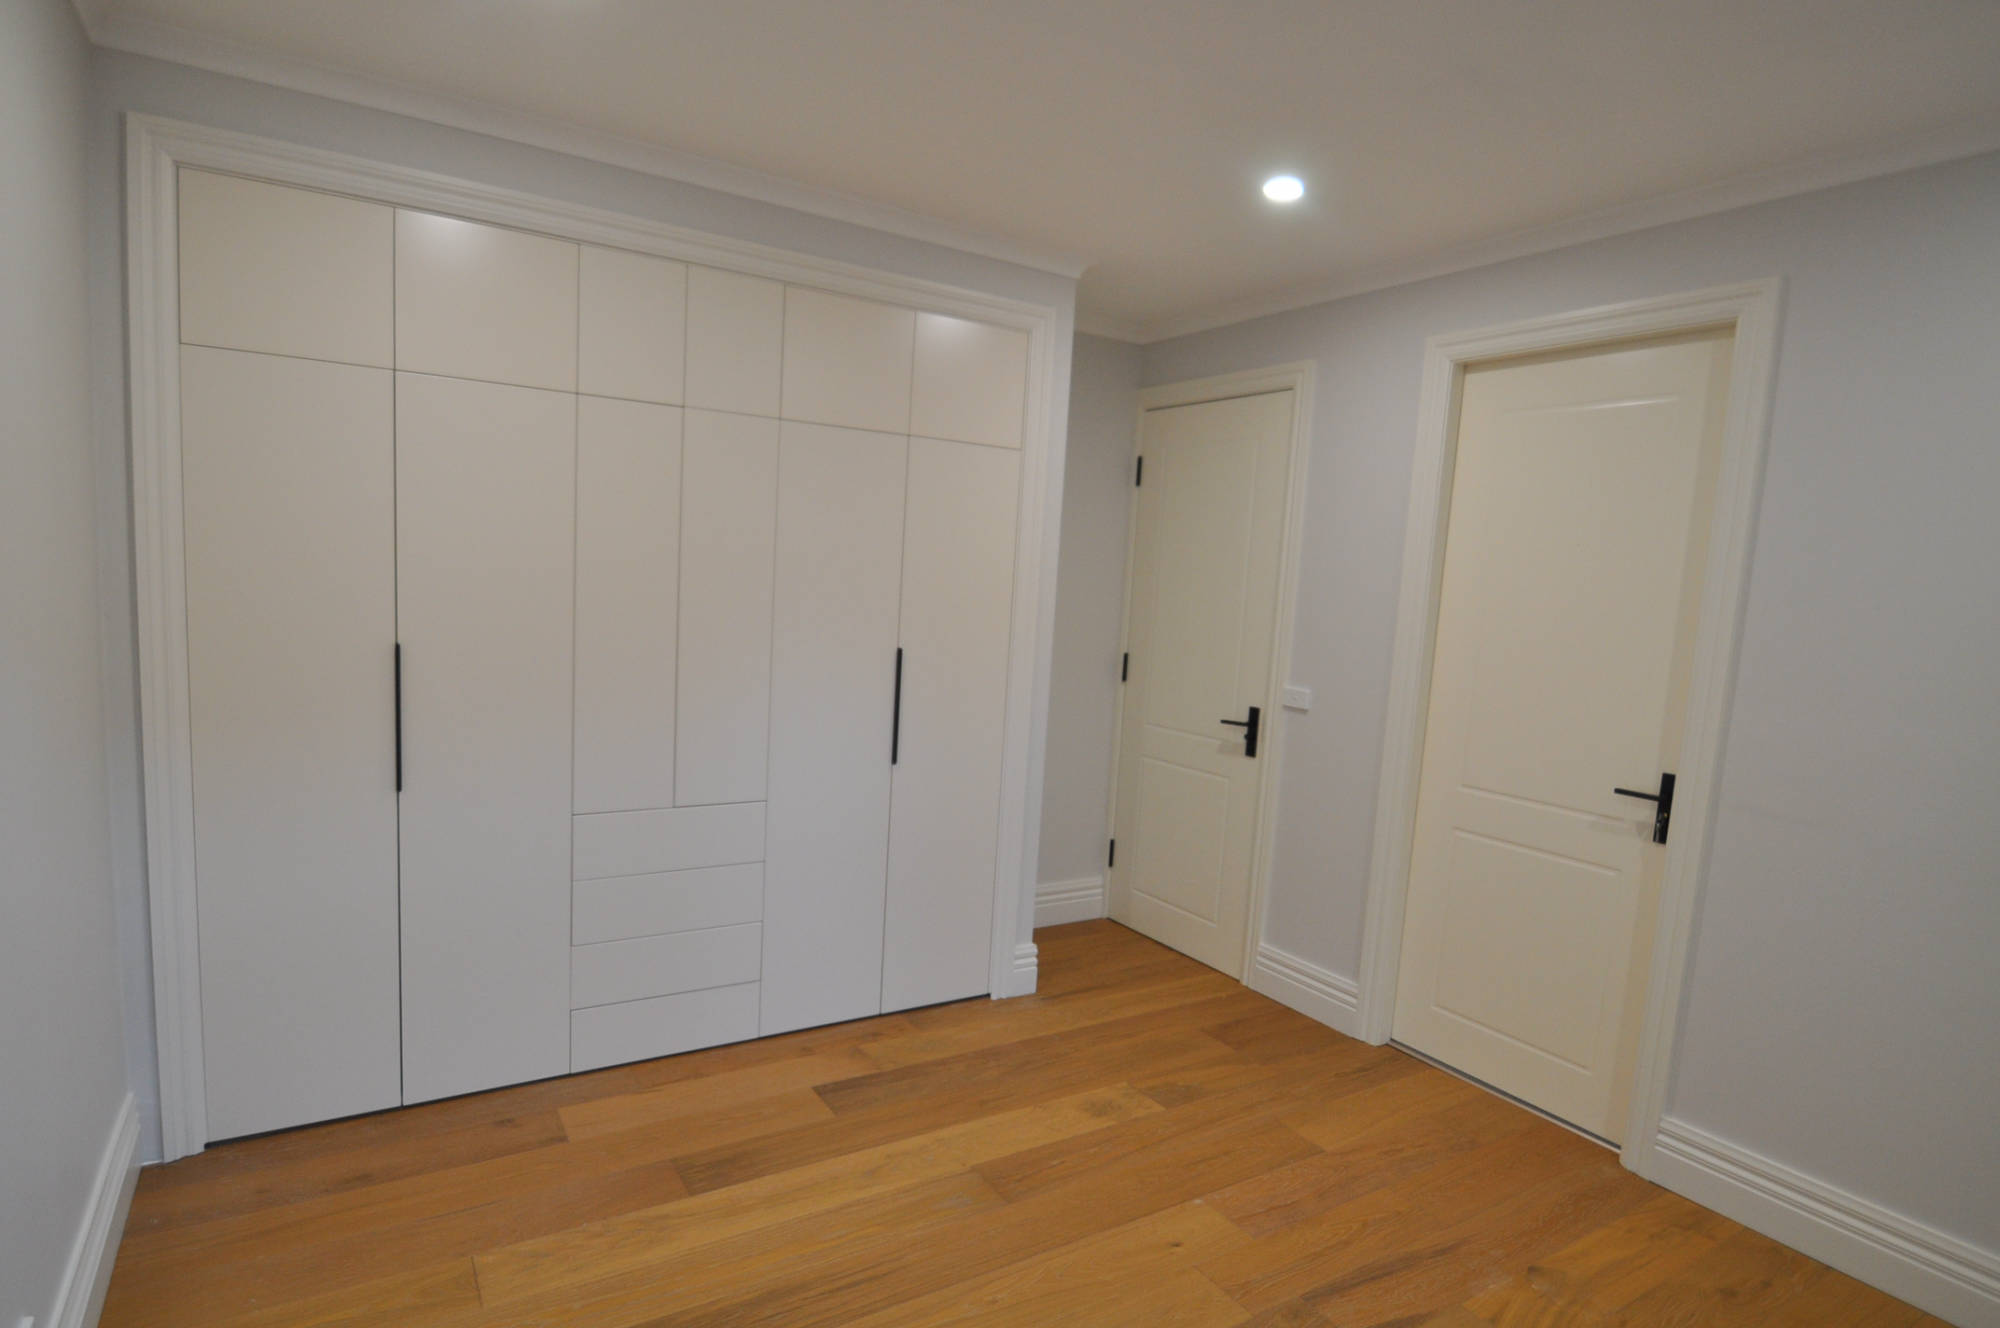 Melbourne Home renovation - wardrobes